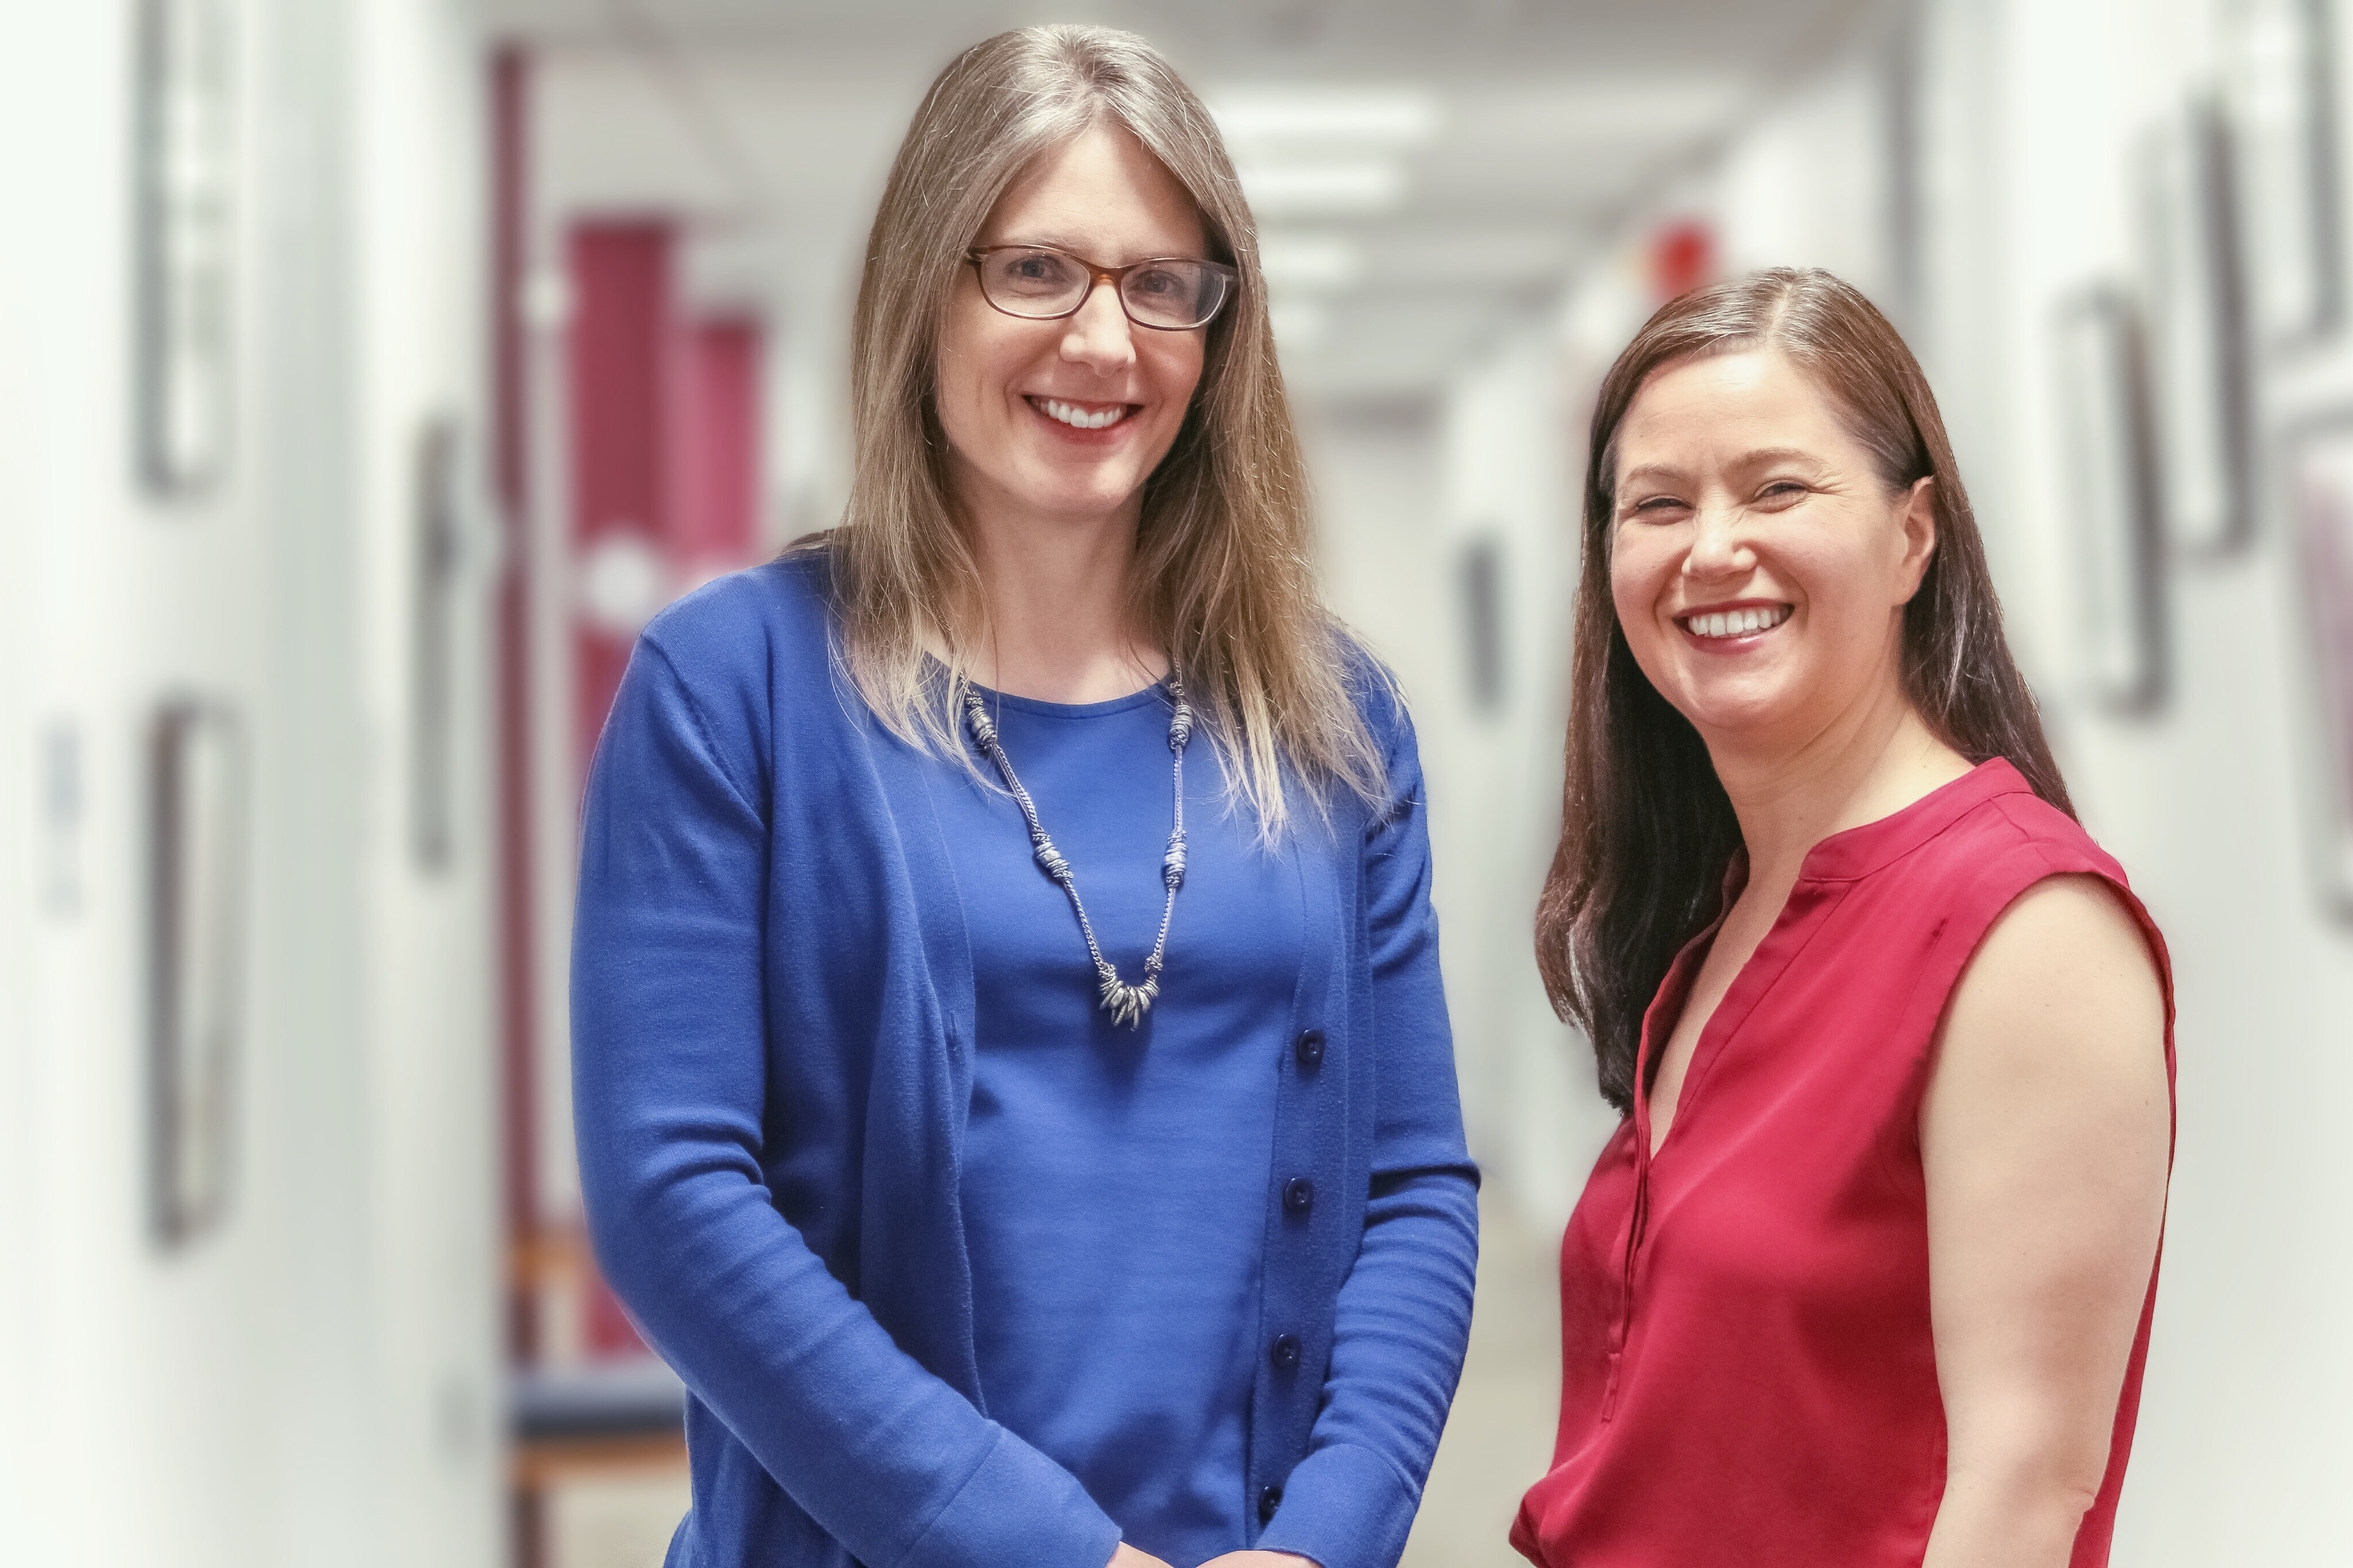 Professors Erika Skoe and Jennifer Tufts from the University of Connecticut Department of Speech, Language and Hearing Sciences are conducting research related to noise-induced hearing loss (NIHL) (Carson Stifel/UConn Photo)